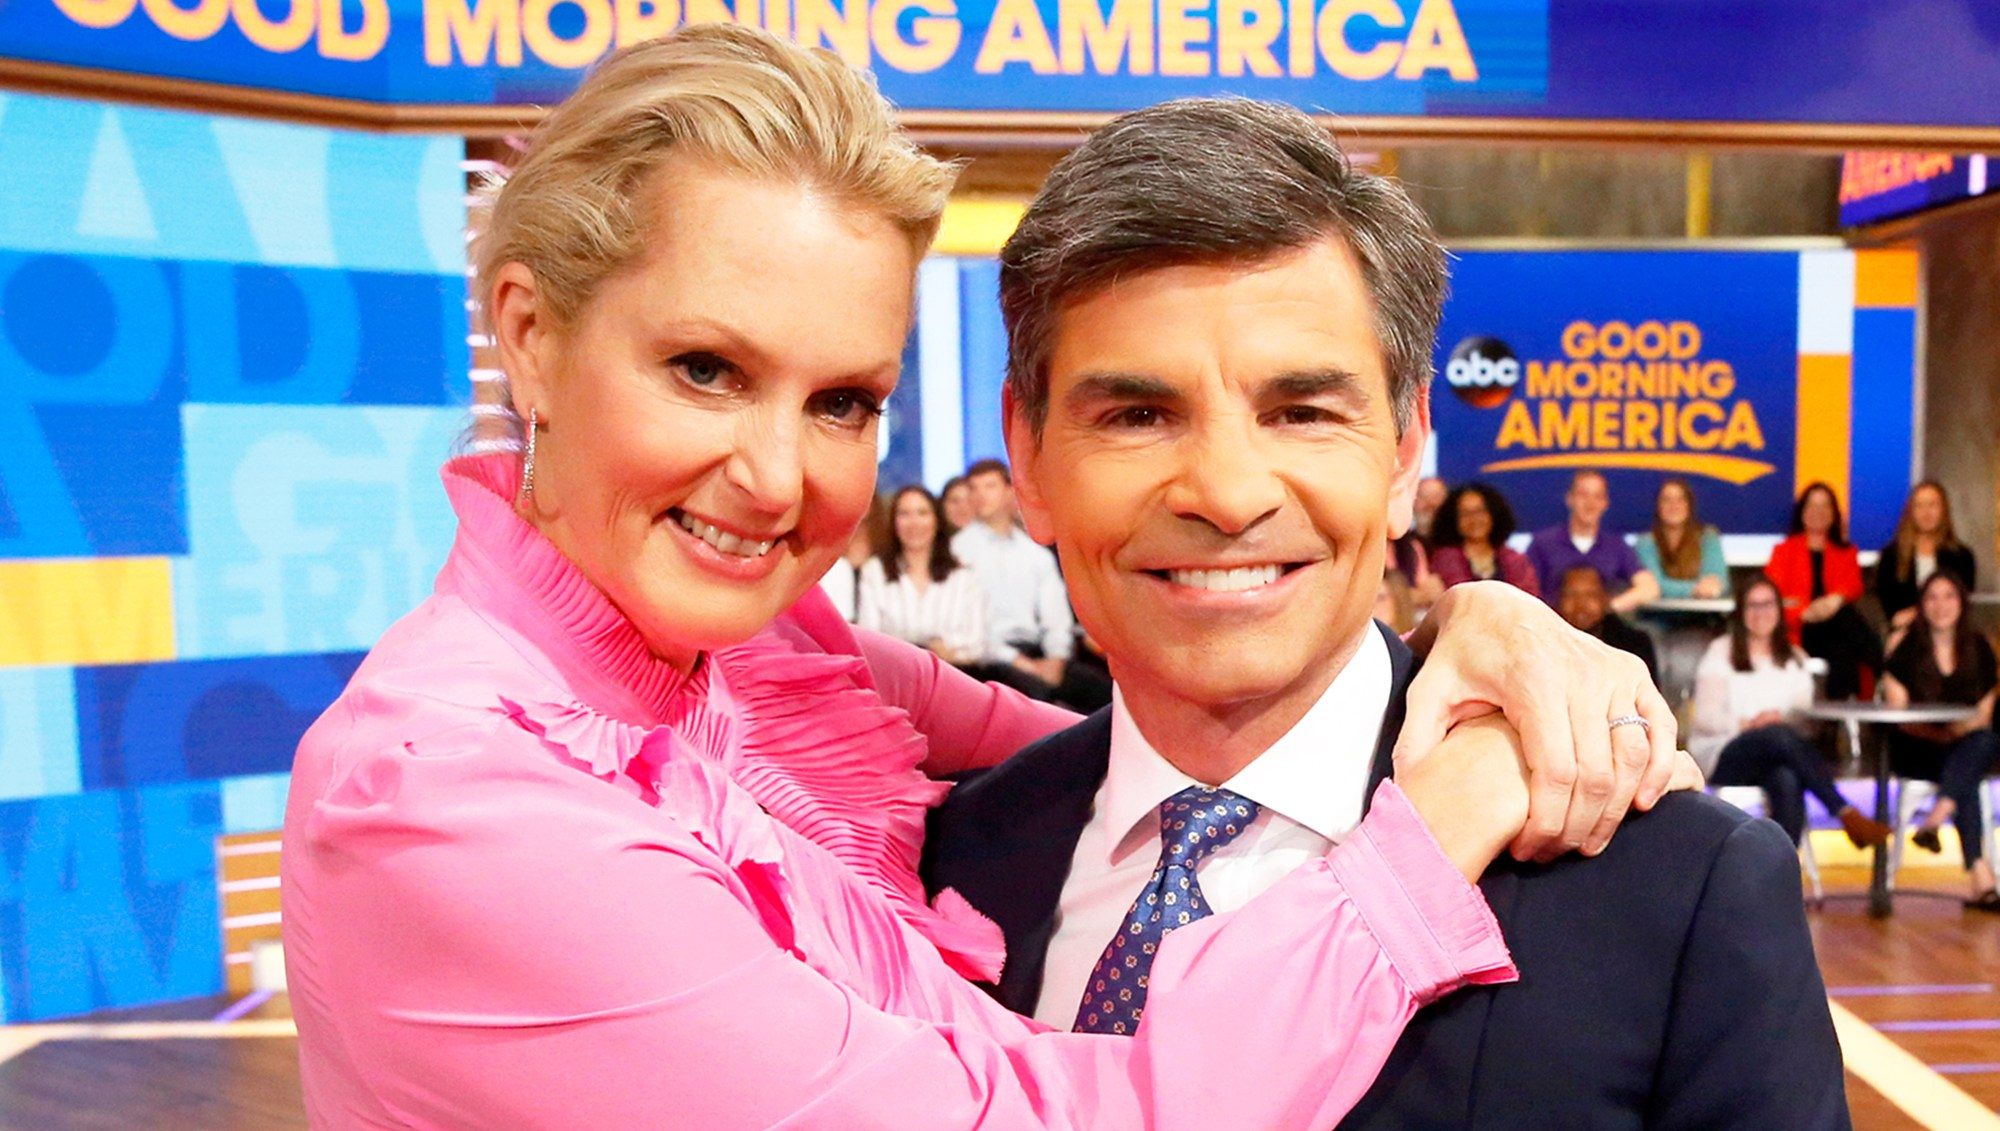 Ali Wentworth and George Stephanopoulos on 'Good Morning America' show